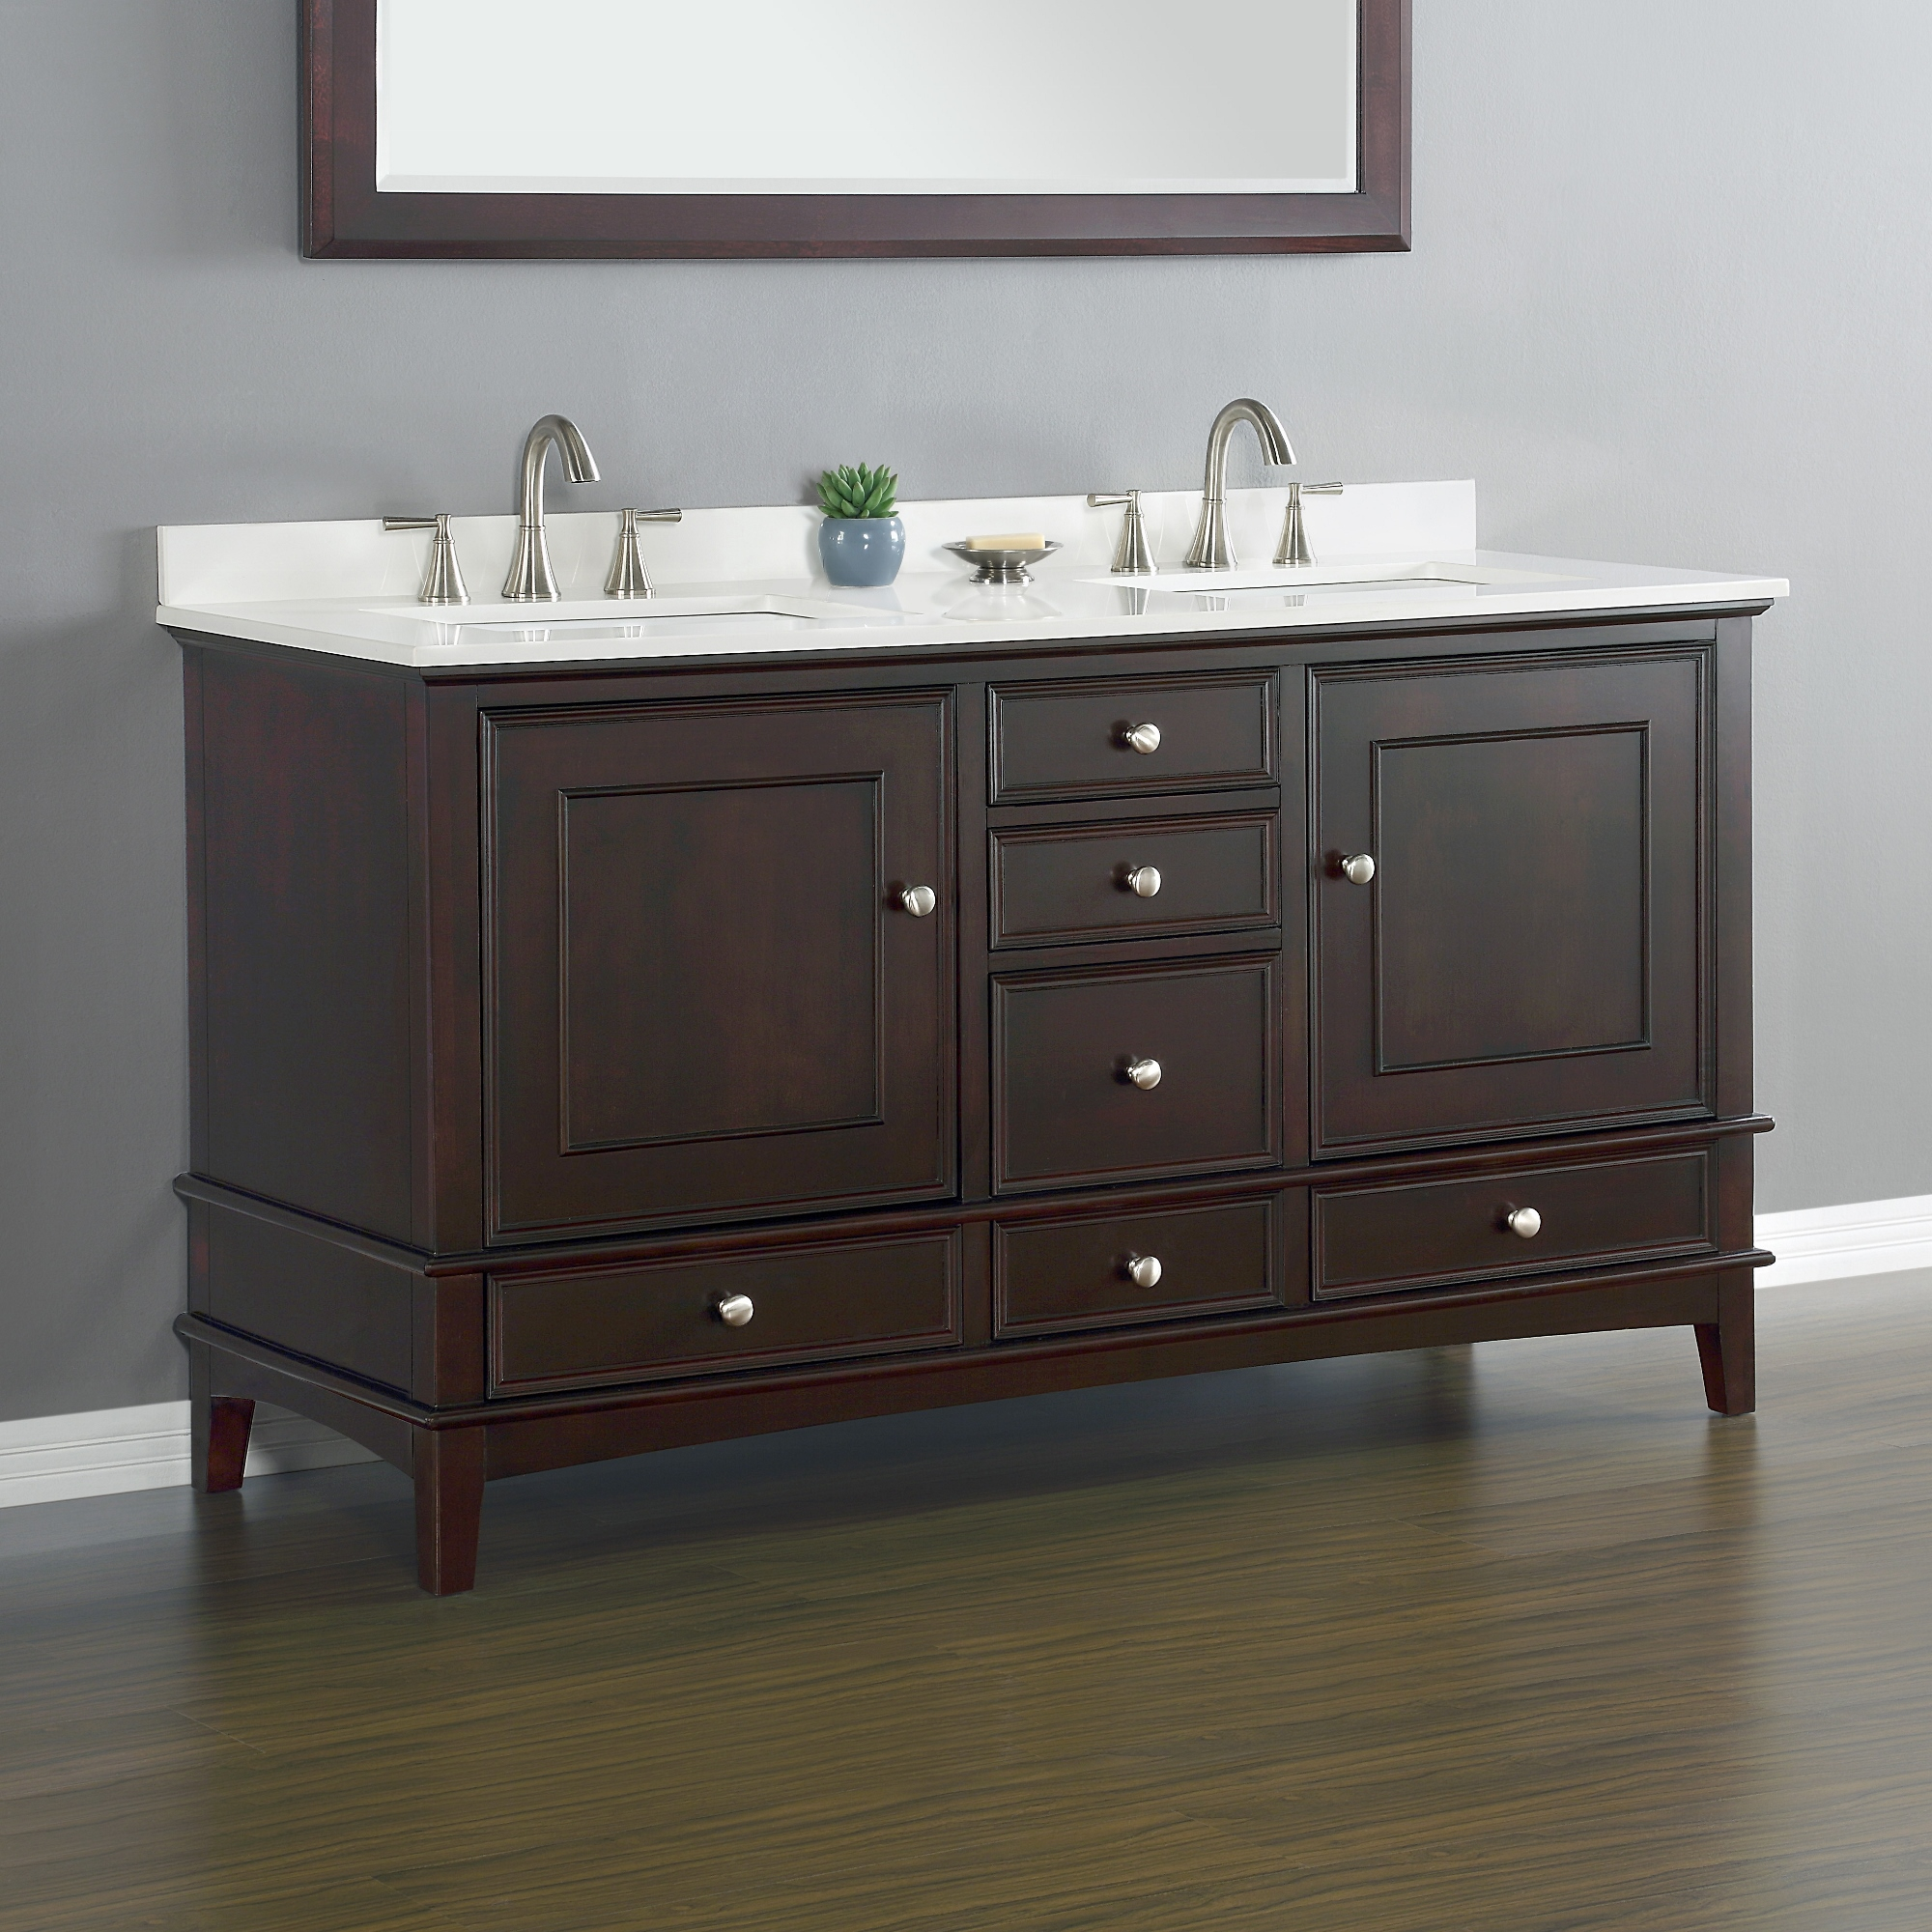 vessel vinnova sink double deals vanity glass pin with white inch com overstock best in countertop ferrara the bathroom mirror shopping on